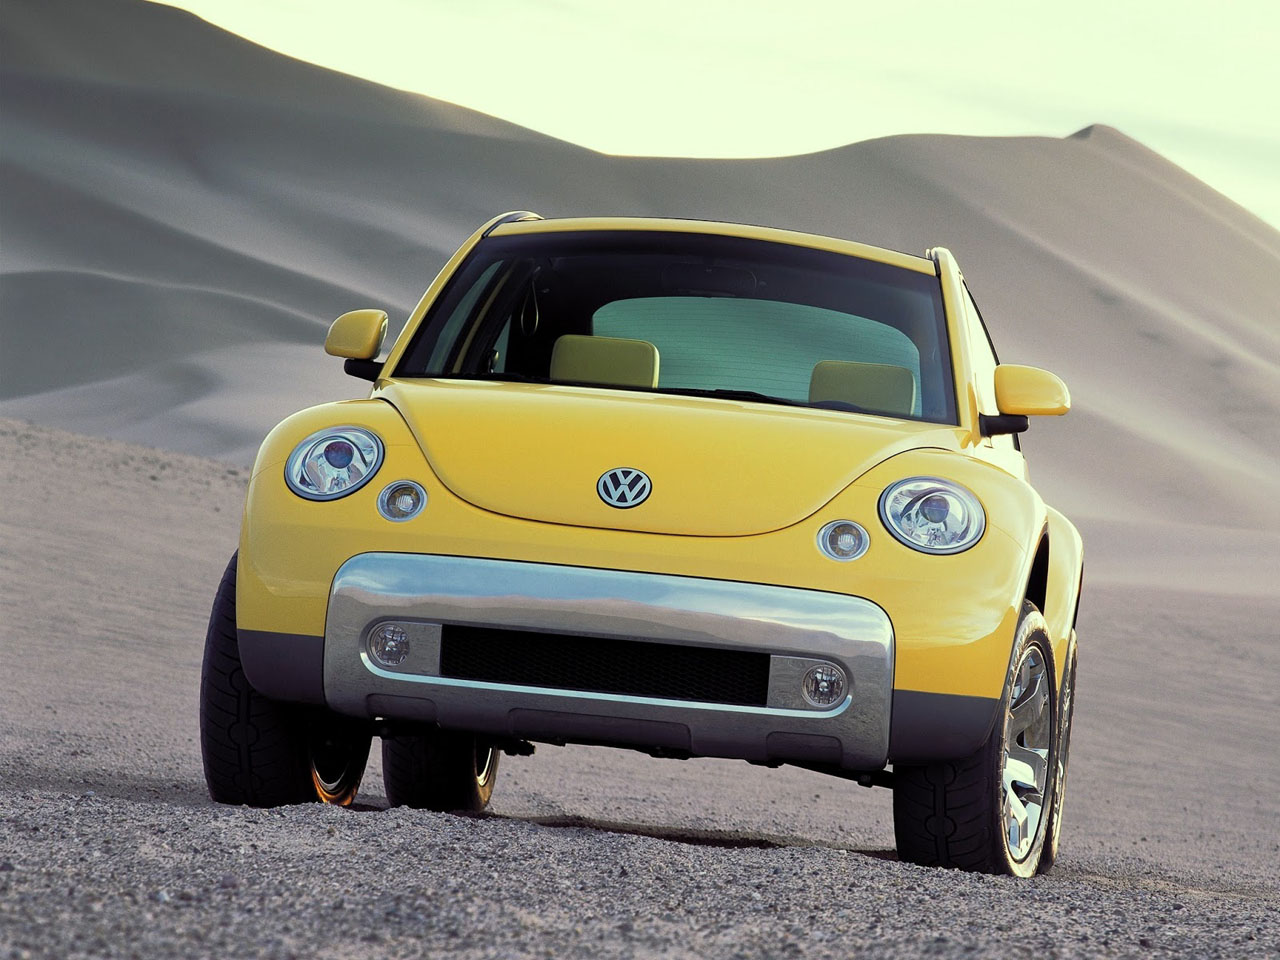 vw to build production version of beetle dune concept carcostcanada. Black Bedroom Furniture Sets. Home Design Ideas